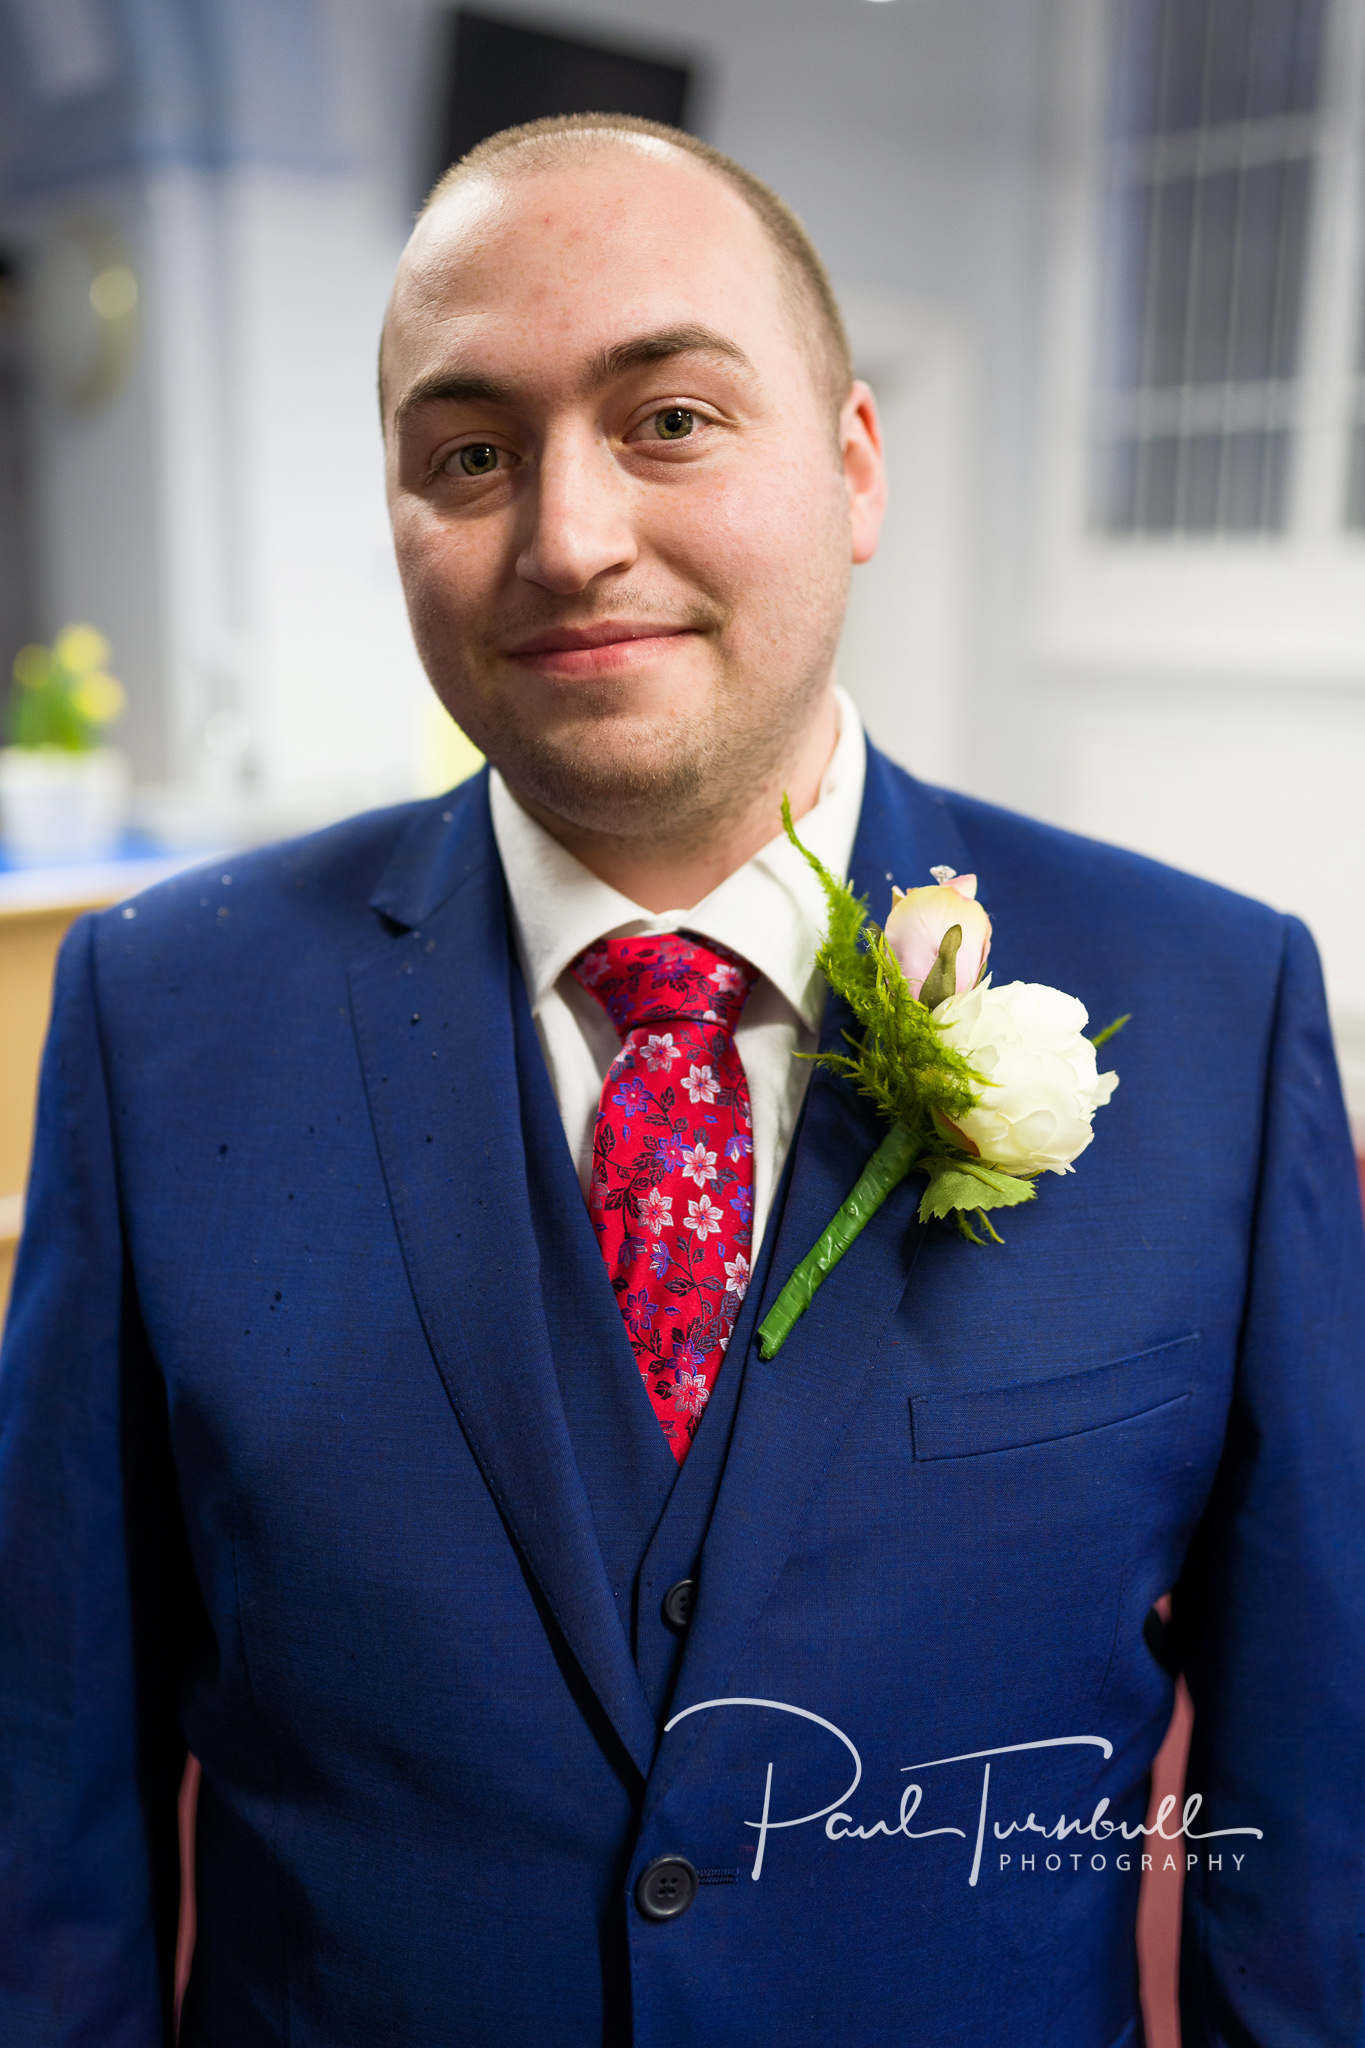 wedding-photographer-pontefract-yorkshire-laura-keanu-006.jpg